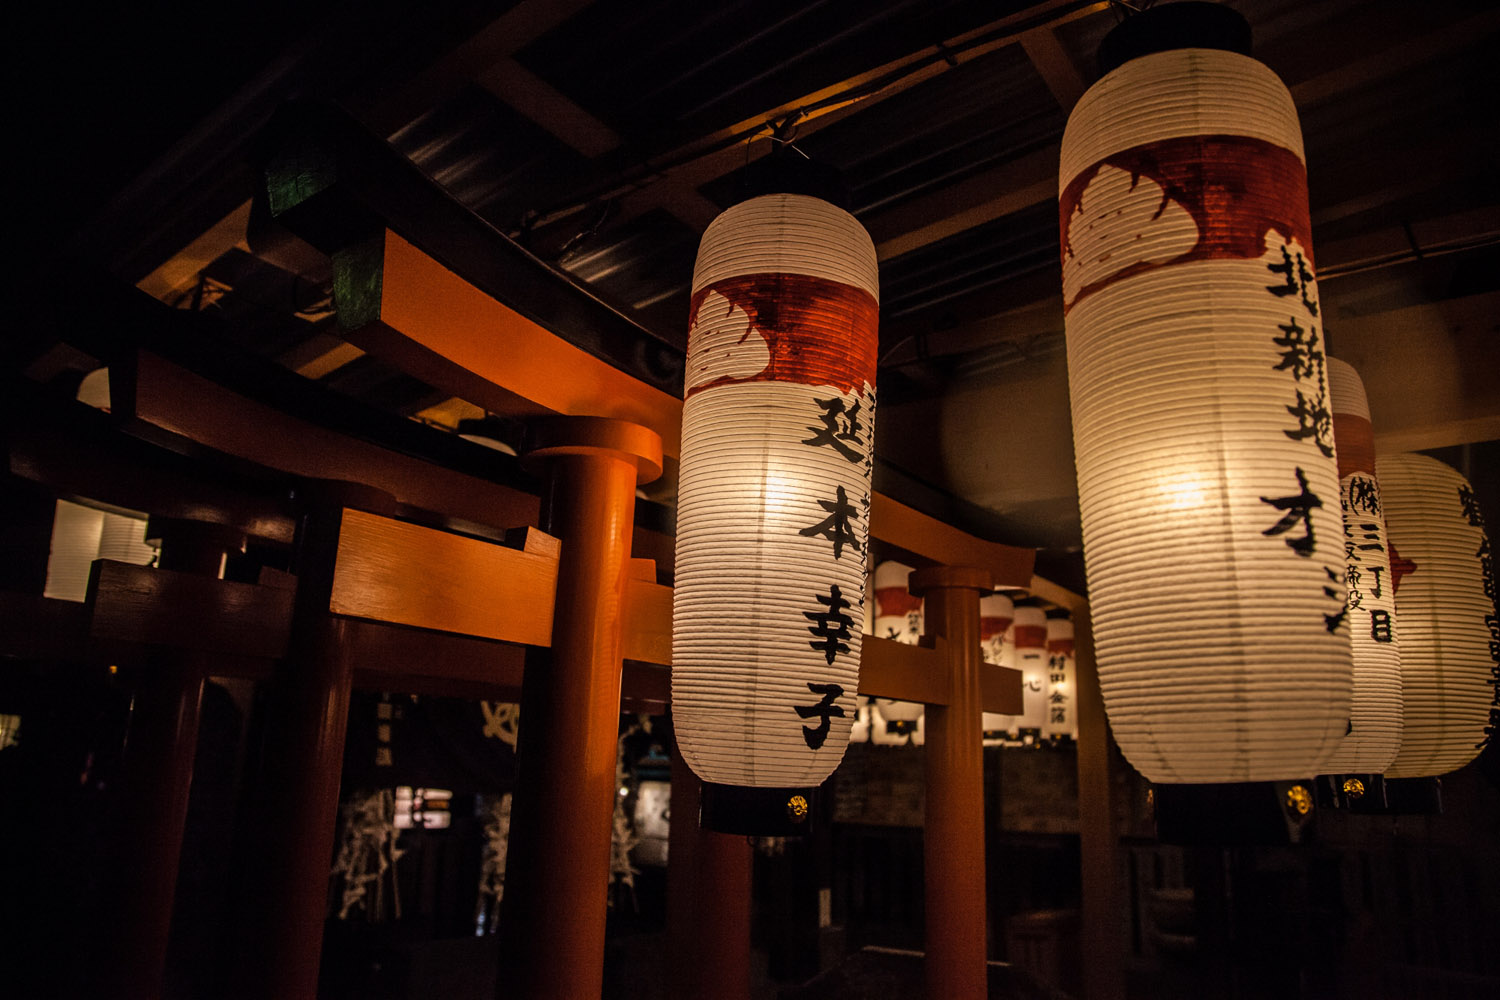 Swaying lanterns frozen by a fast shutter – Hozen-ji temple, Osaka